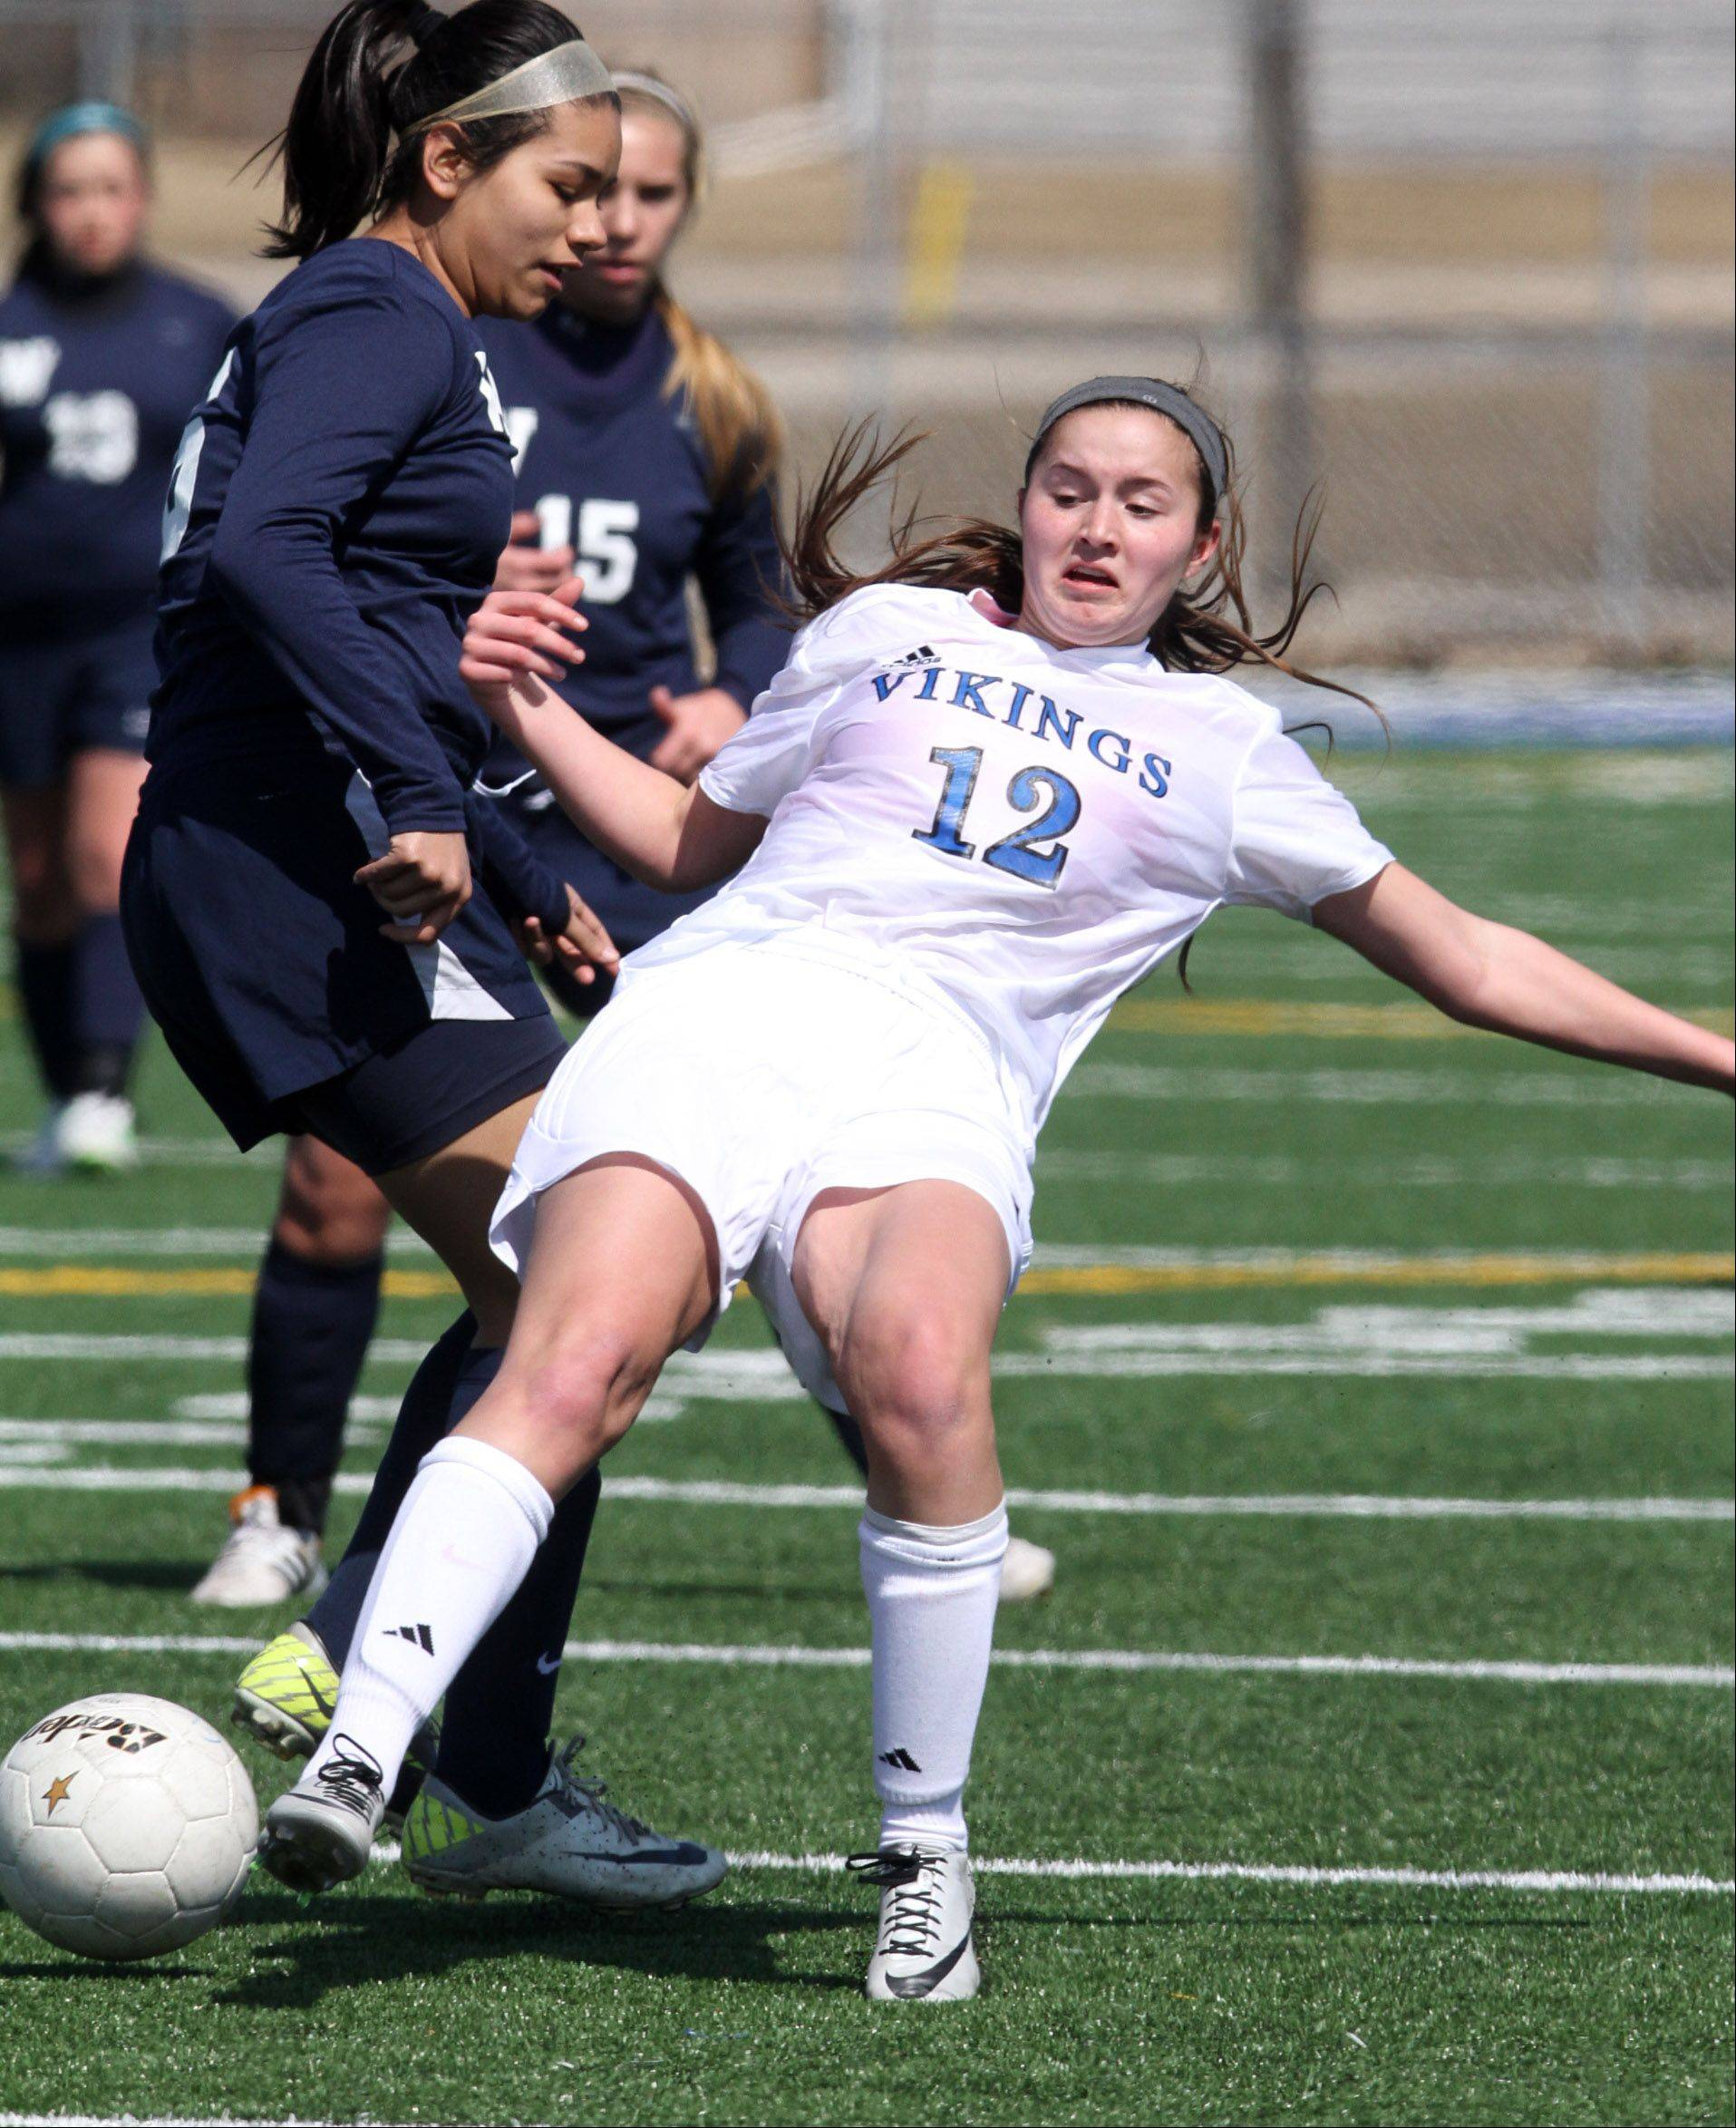 Geneva's Maggie Bodine gets to the ball ahead of a West Aurora defender Saturday in Geneva.